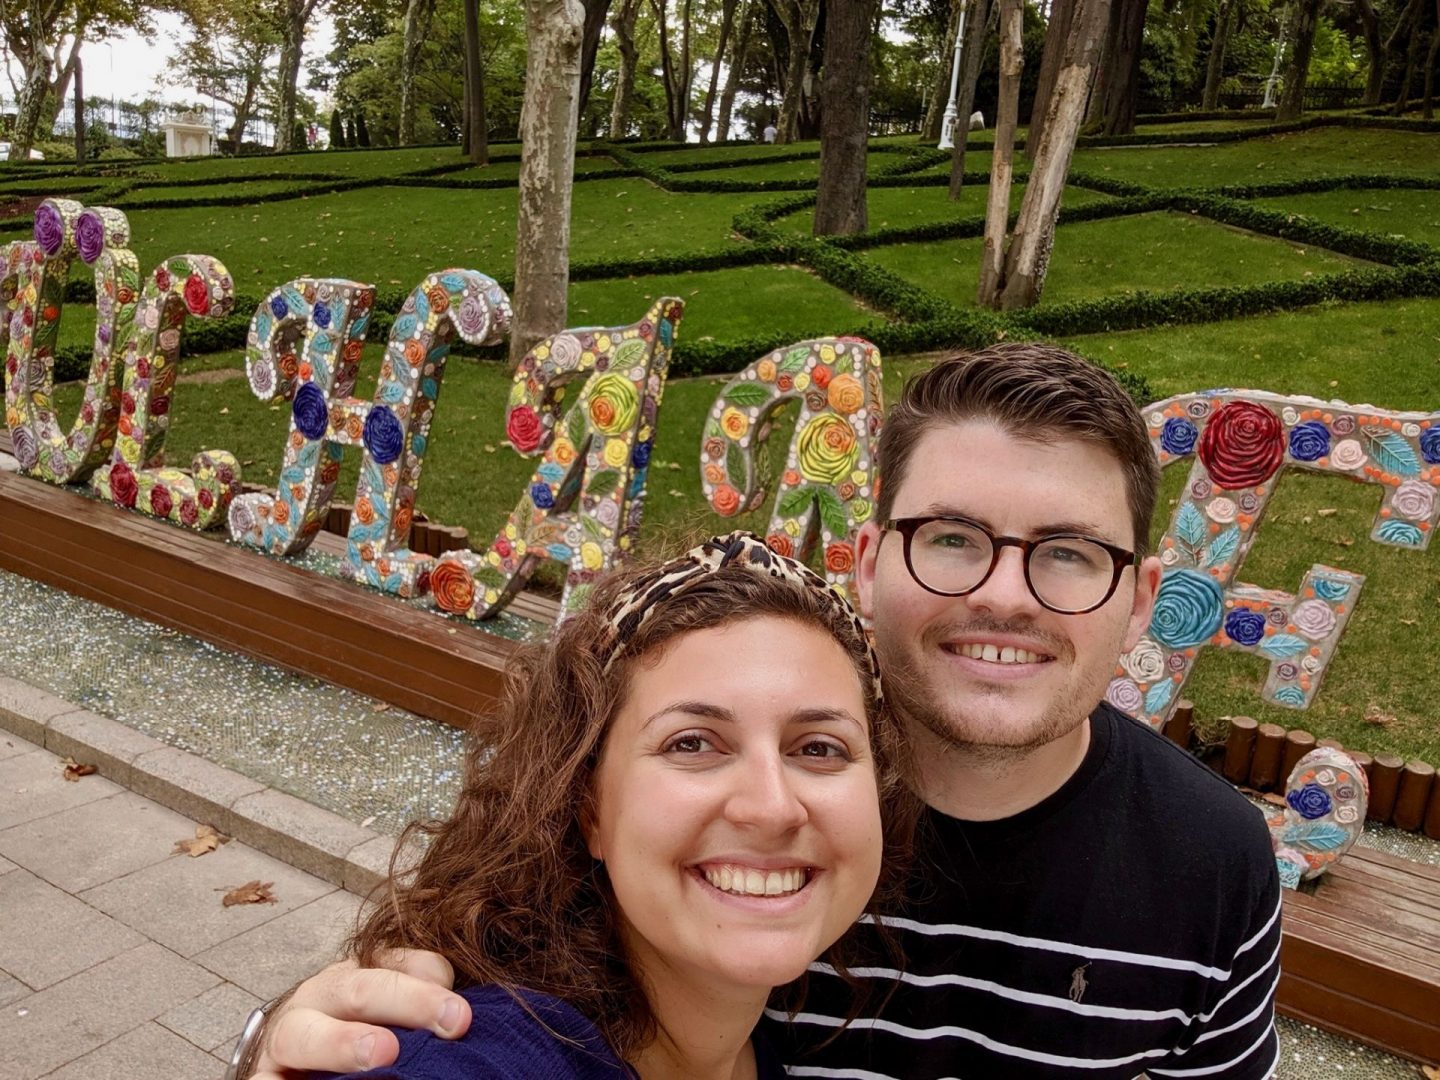 A selfie of a couple in Gülhane Park with a sign of the park's name behind them. 48 hours in Istanbul